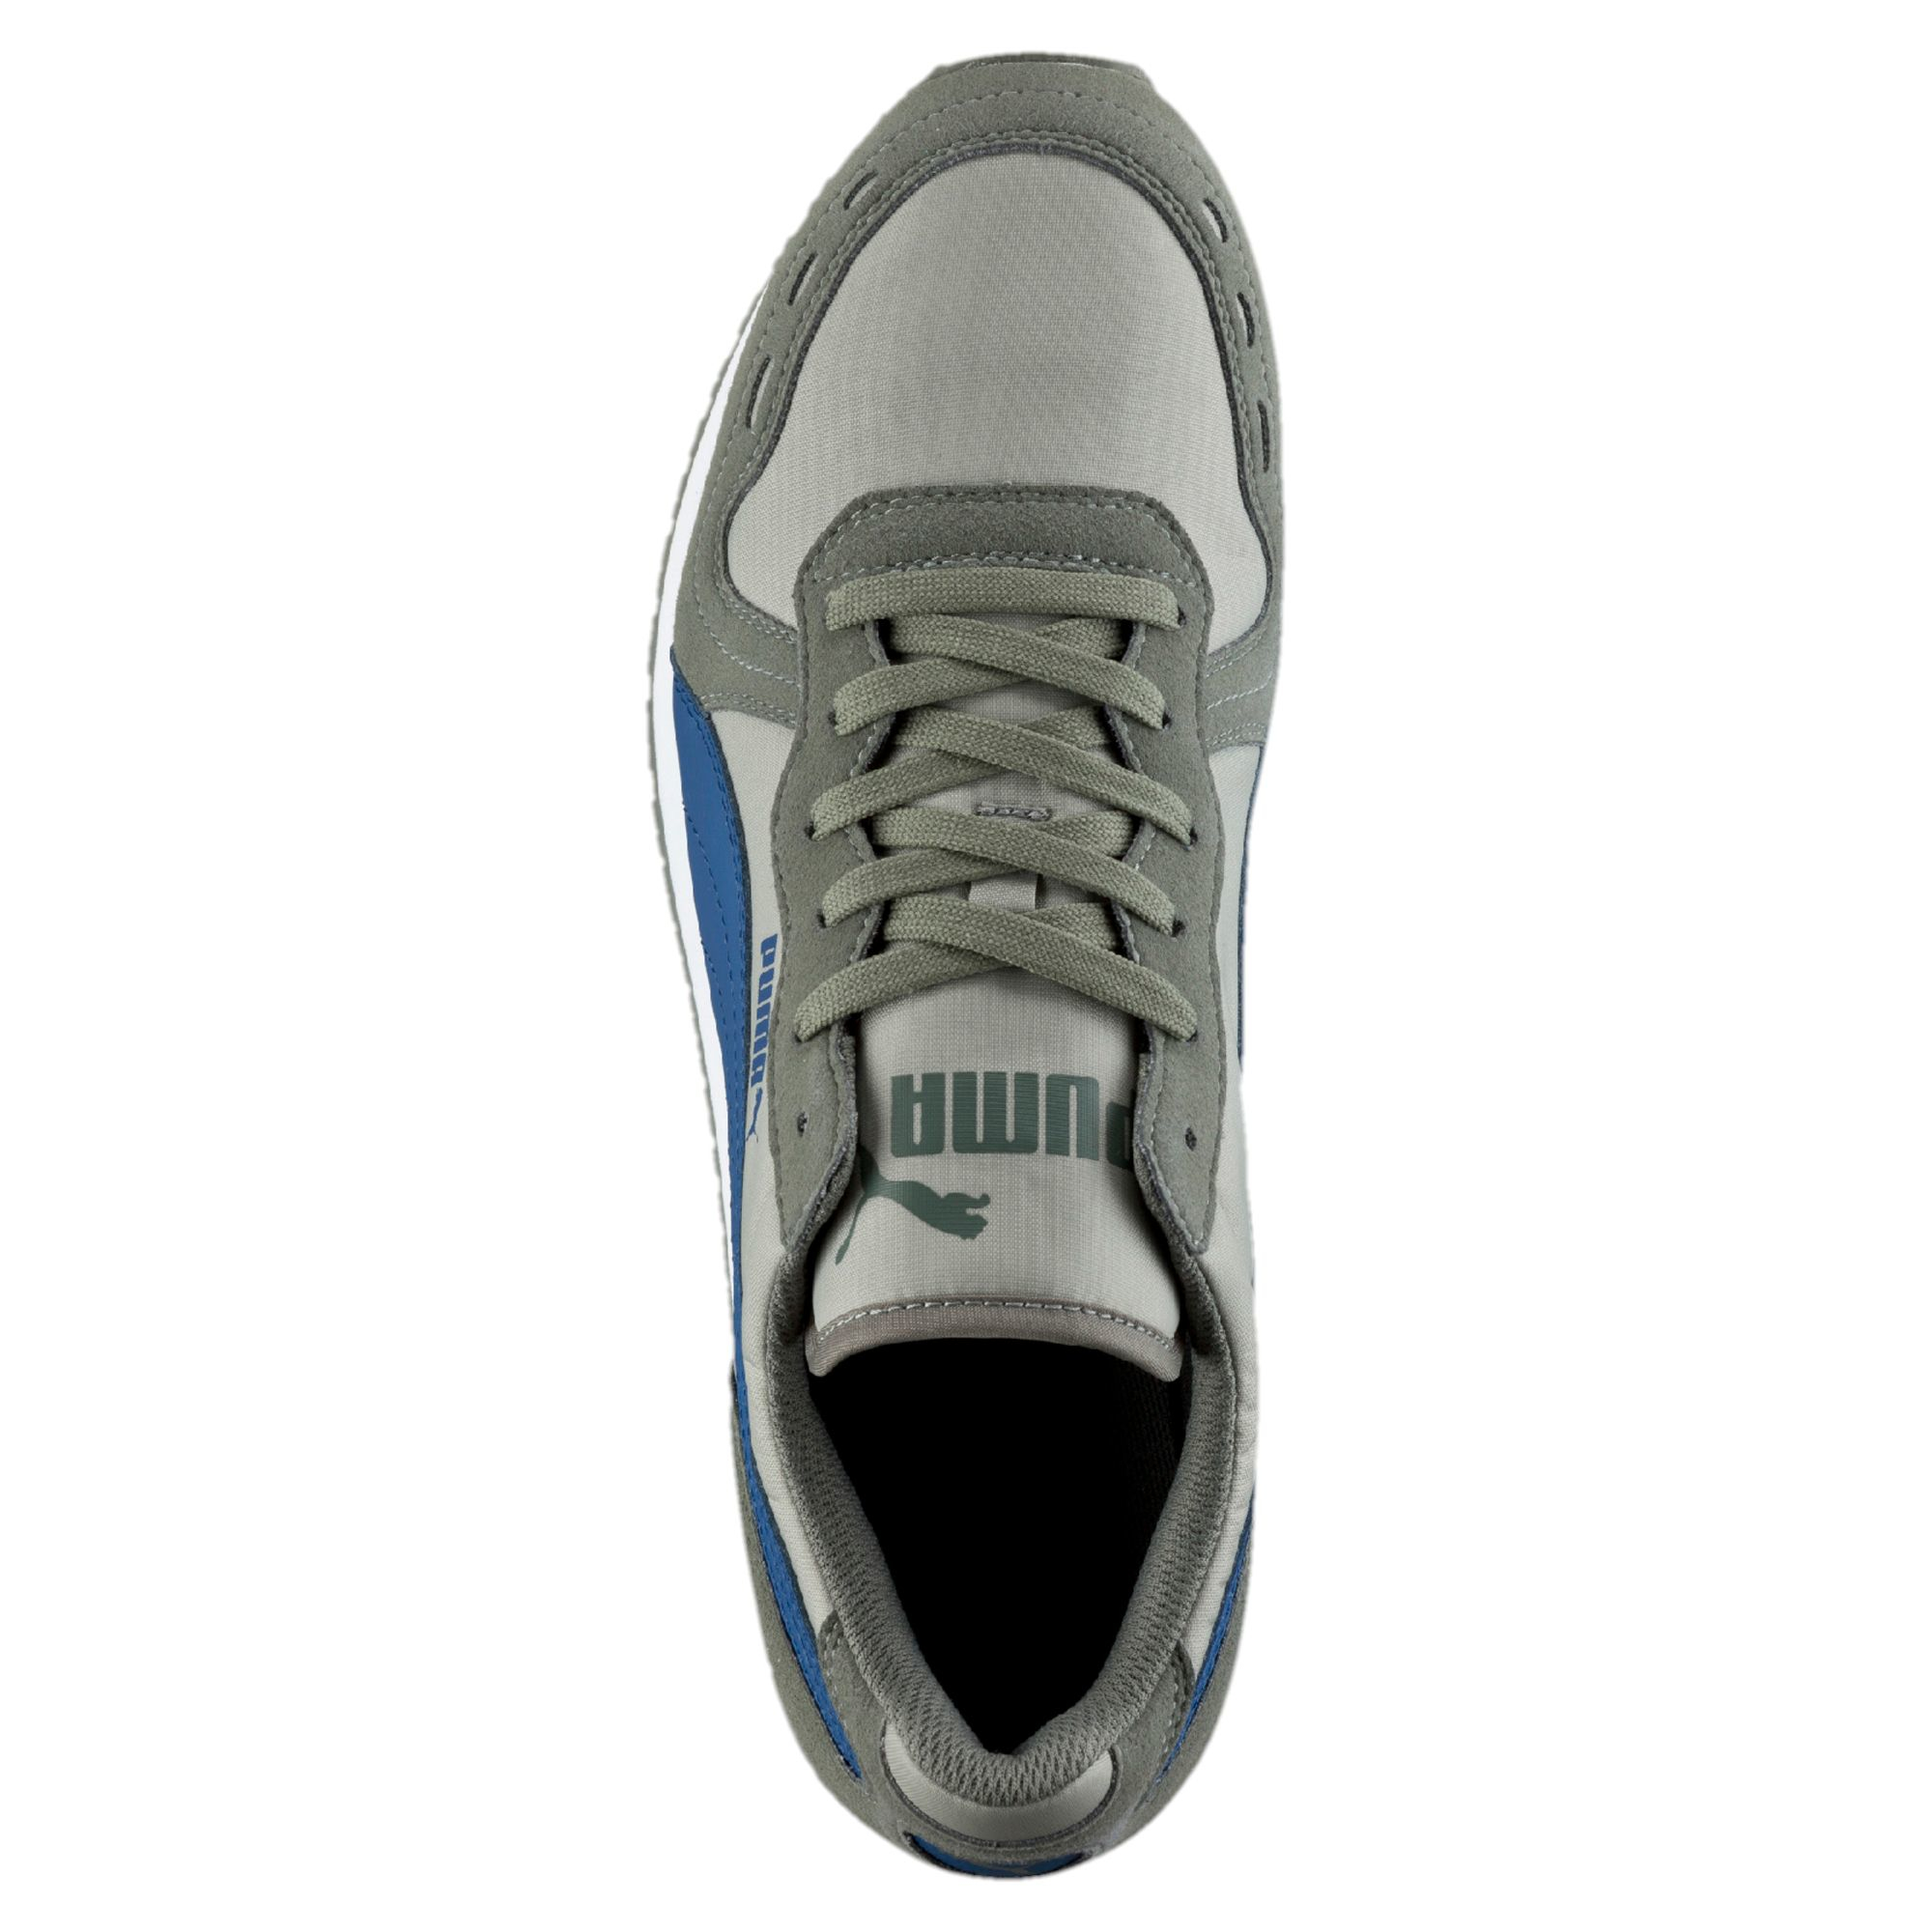 14efadd65a9 Lyst - PUMA Cabana Racer Fun Sneakers in Gray for Men